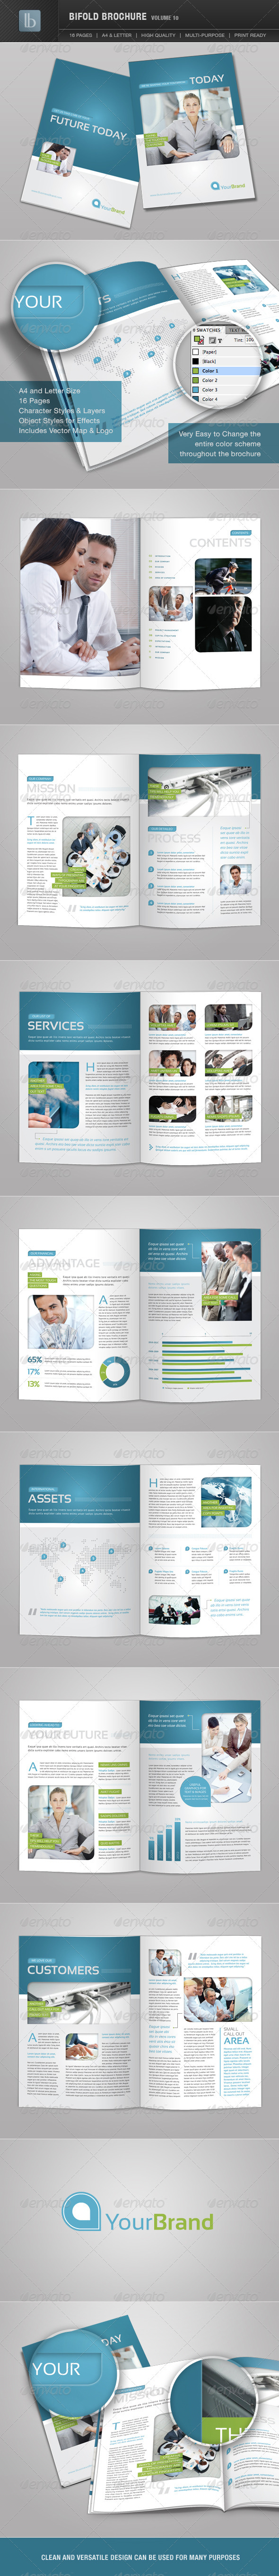 Bifold Brochure | Volume 10 - Corporate Brochures